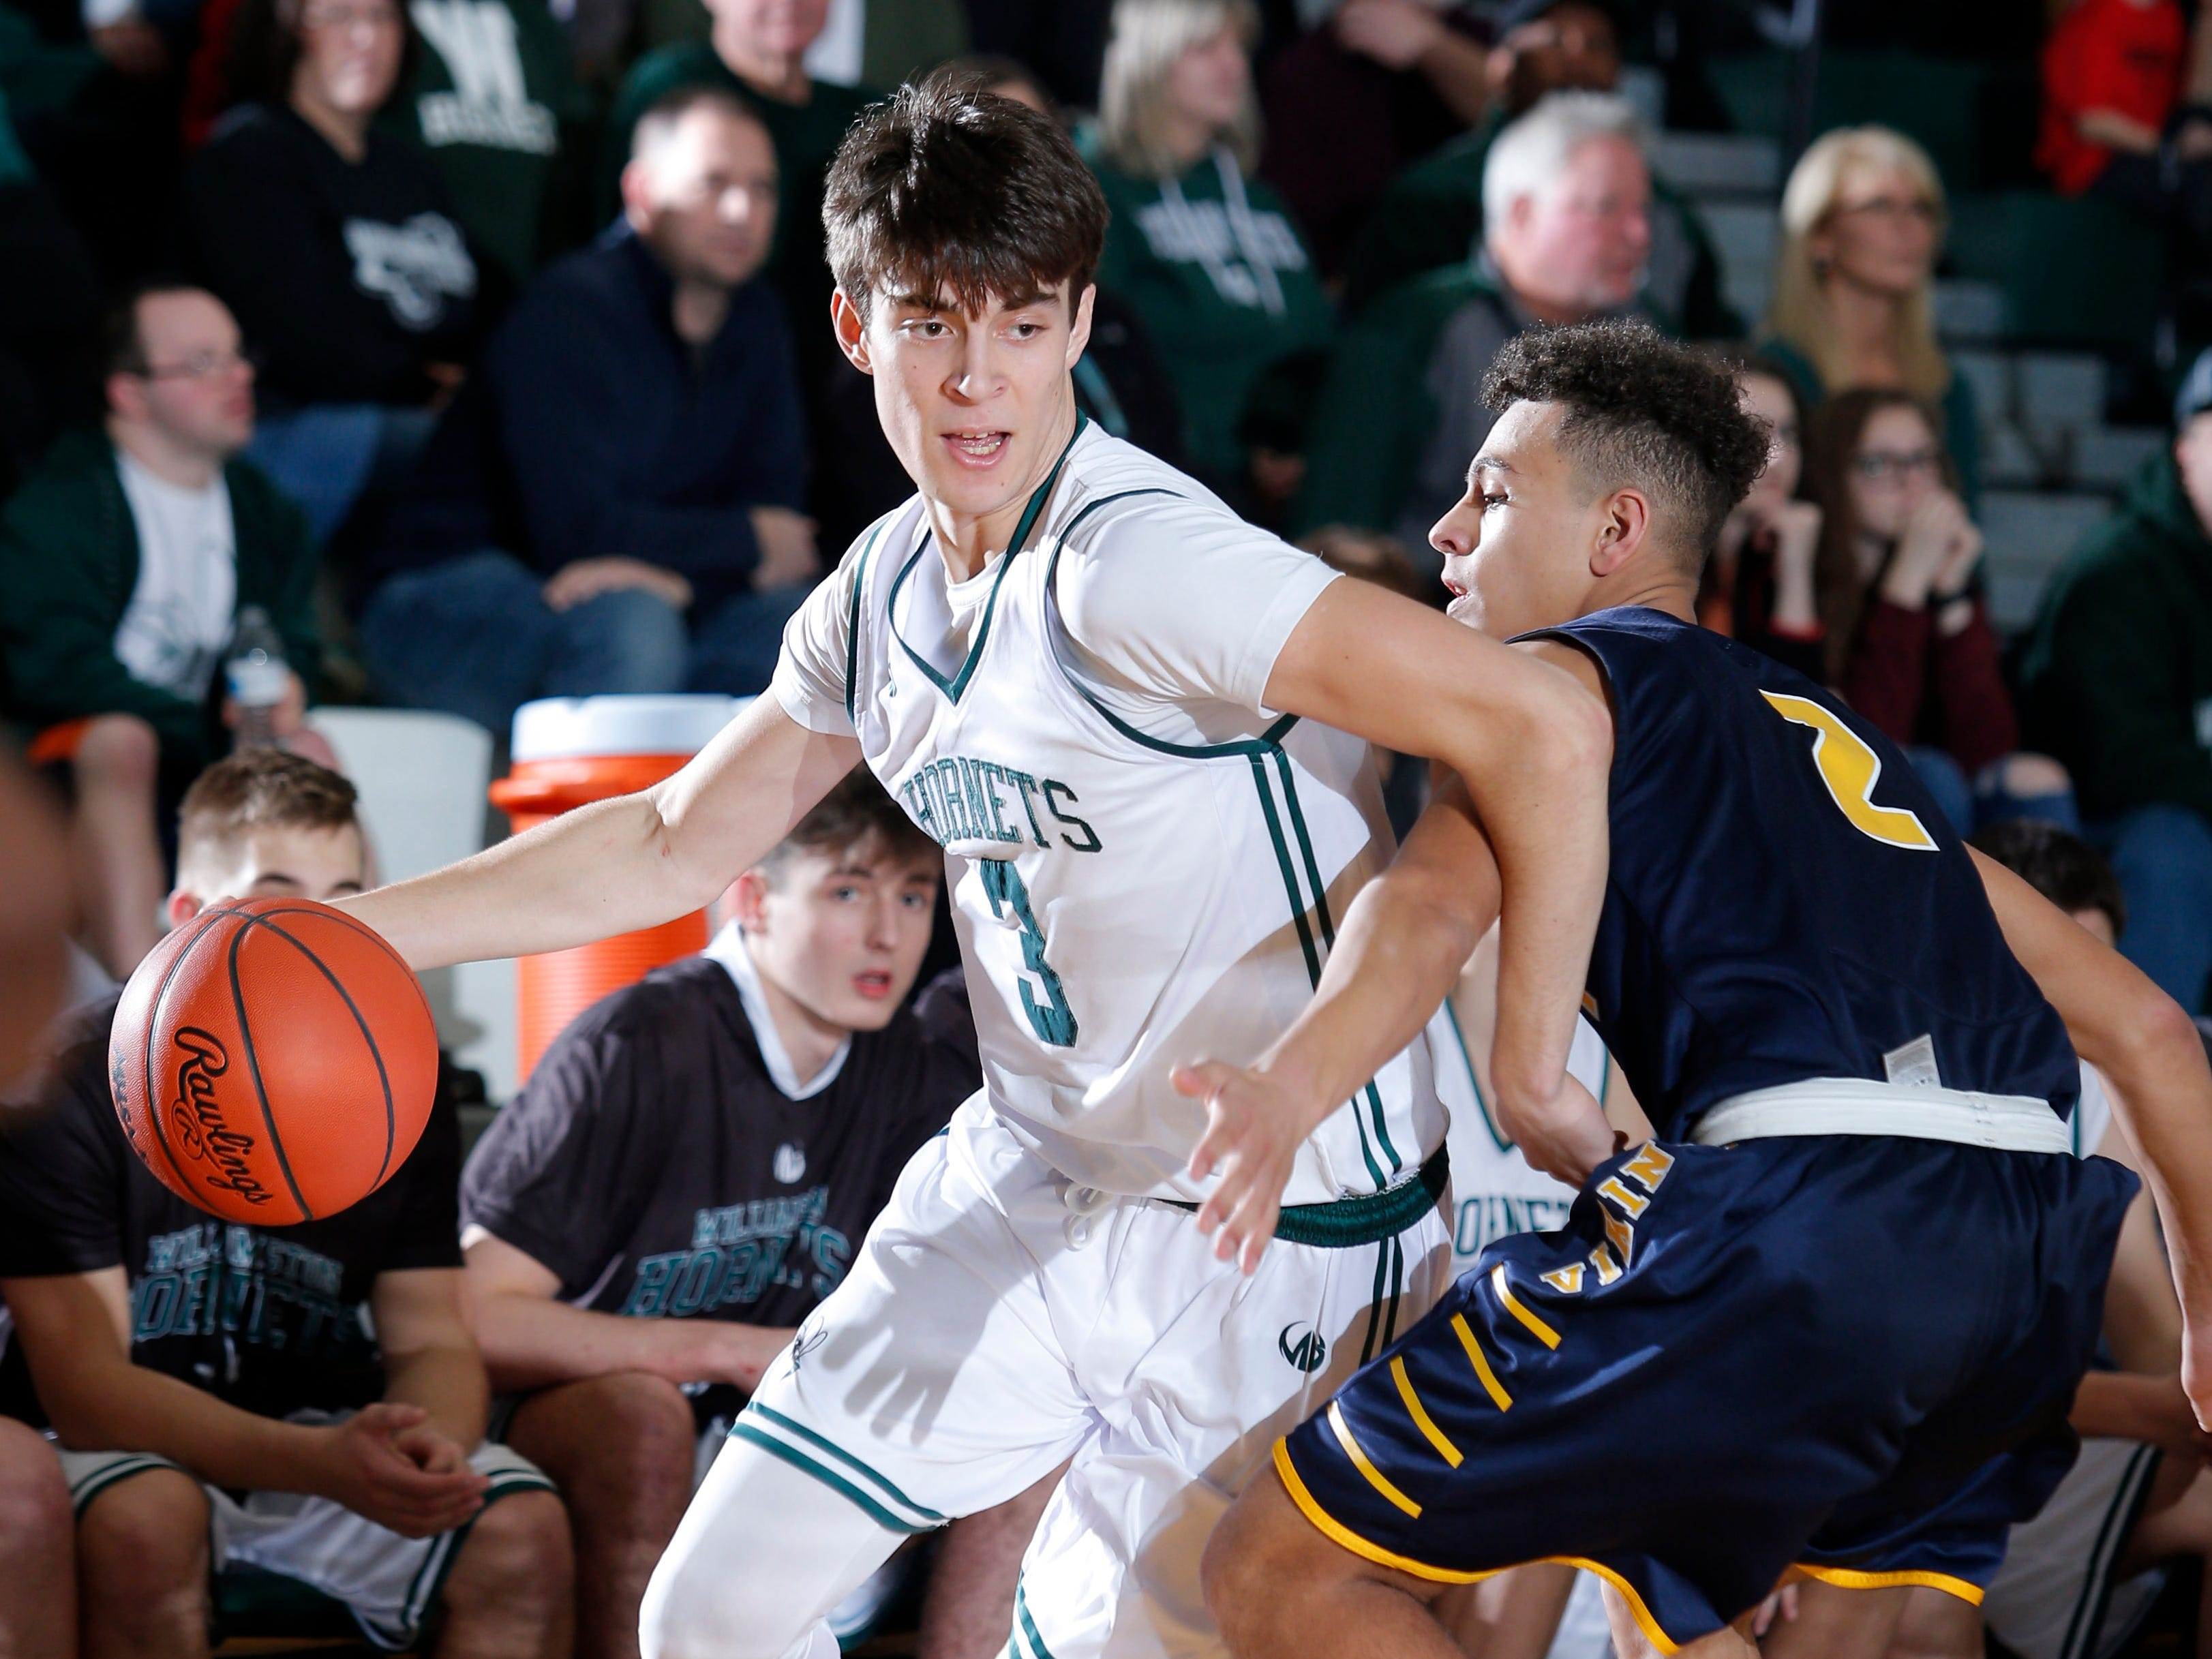 Williamston's Case Conley, left, drives against Haslett's Ty Andrades, Friday, Jan. 11, 2019, in Williamston, Mich.